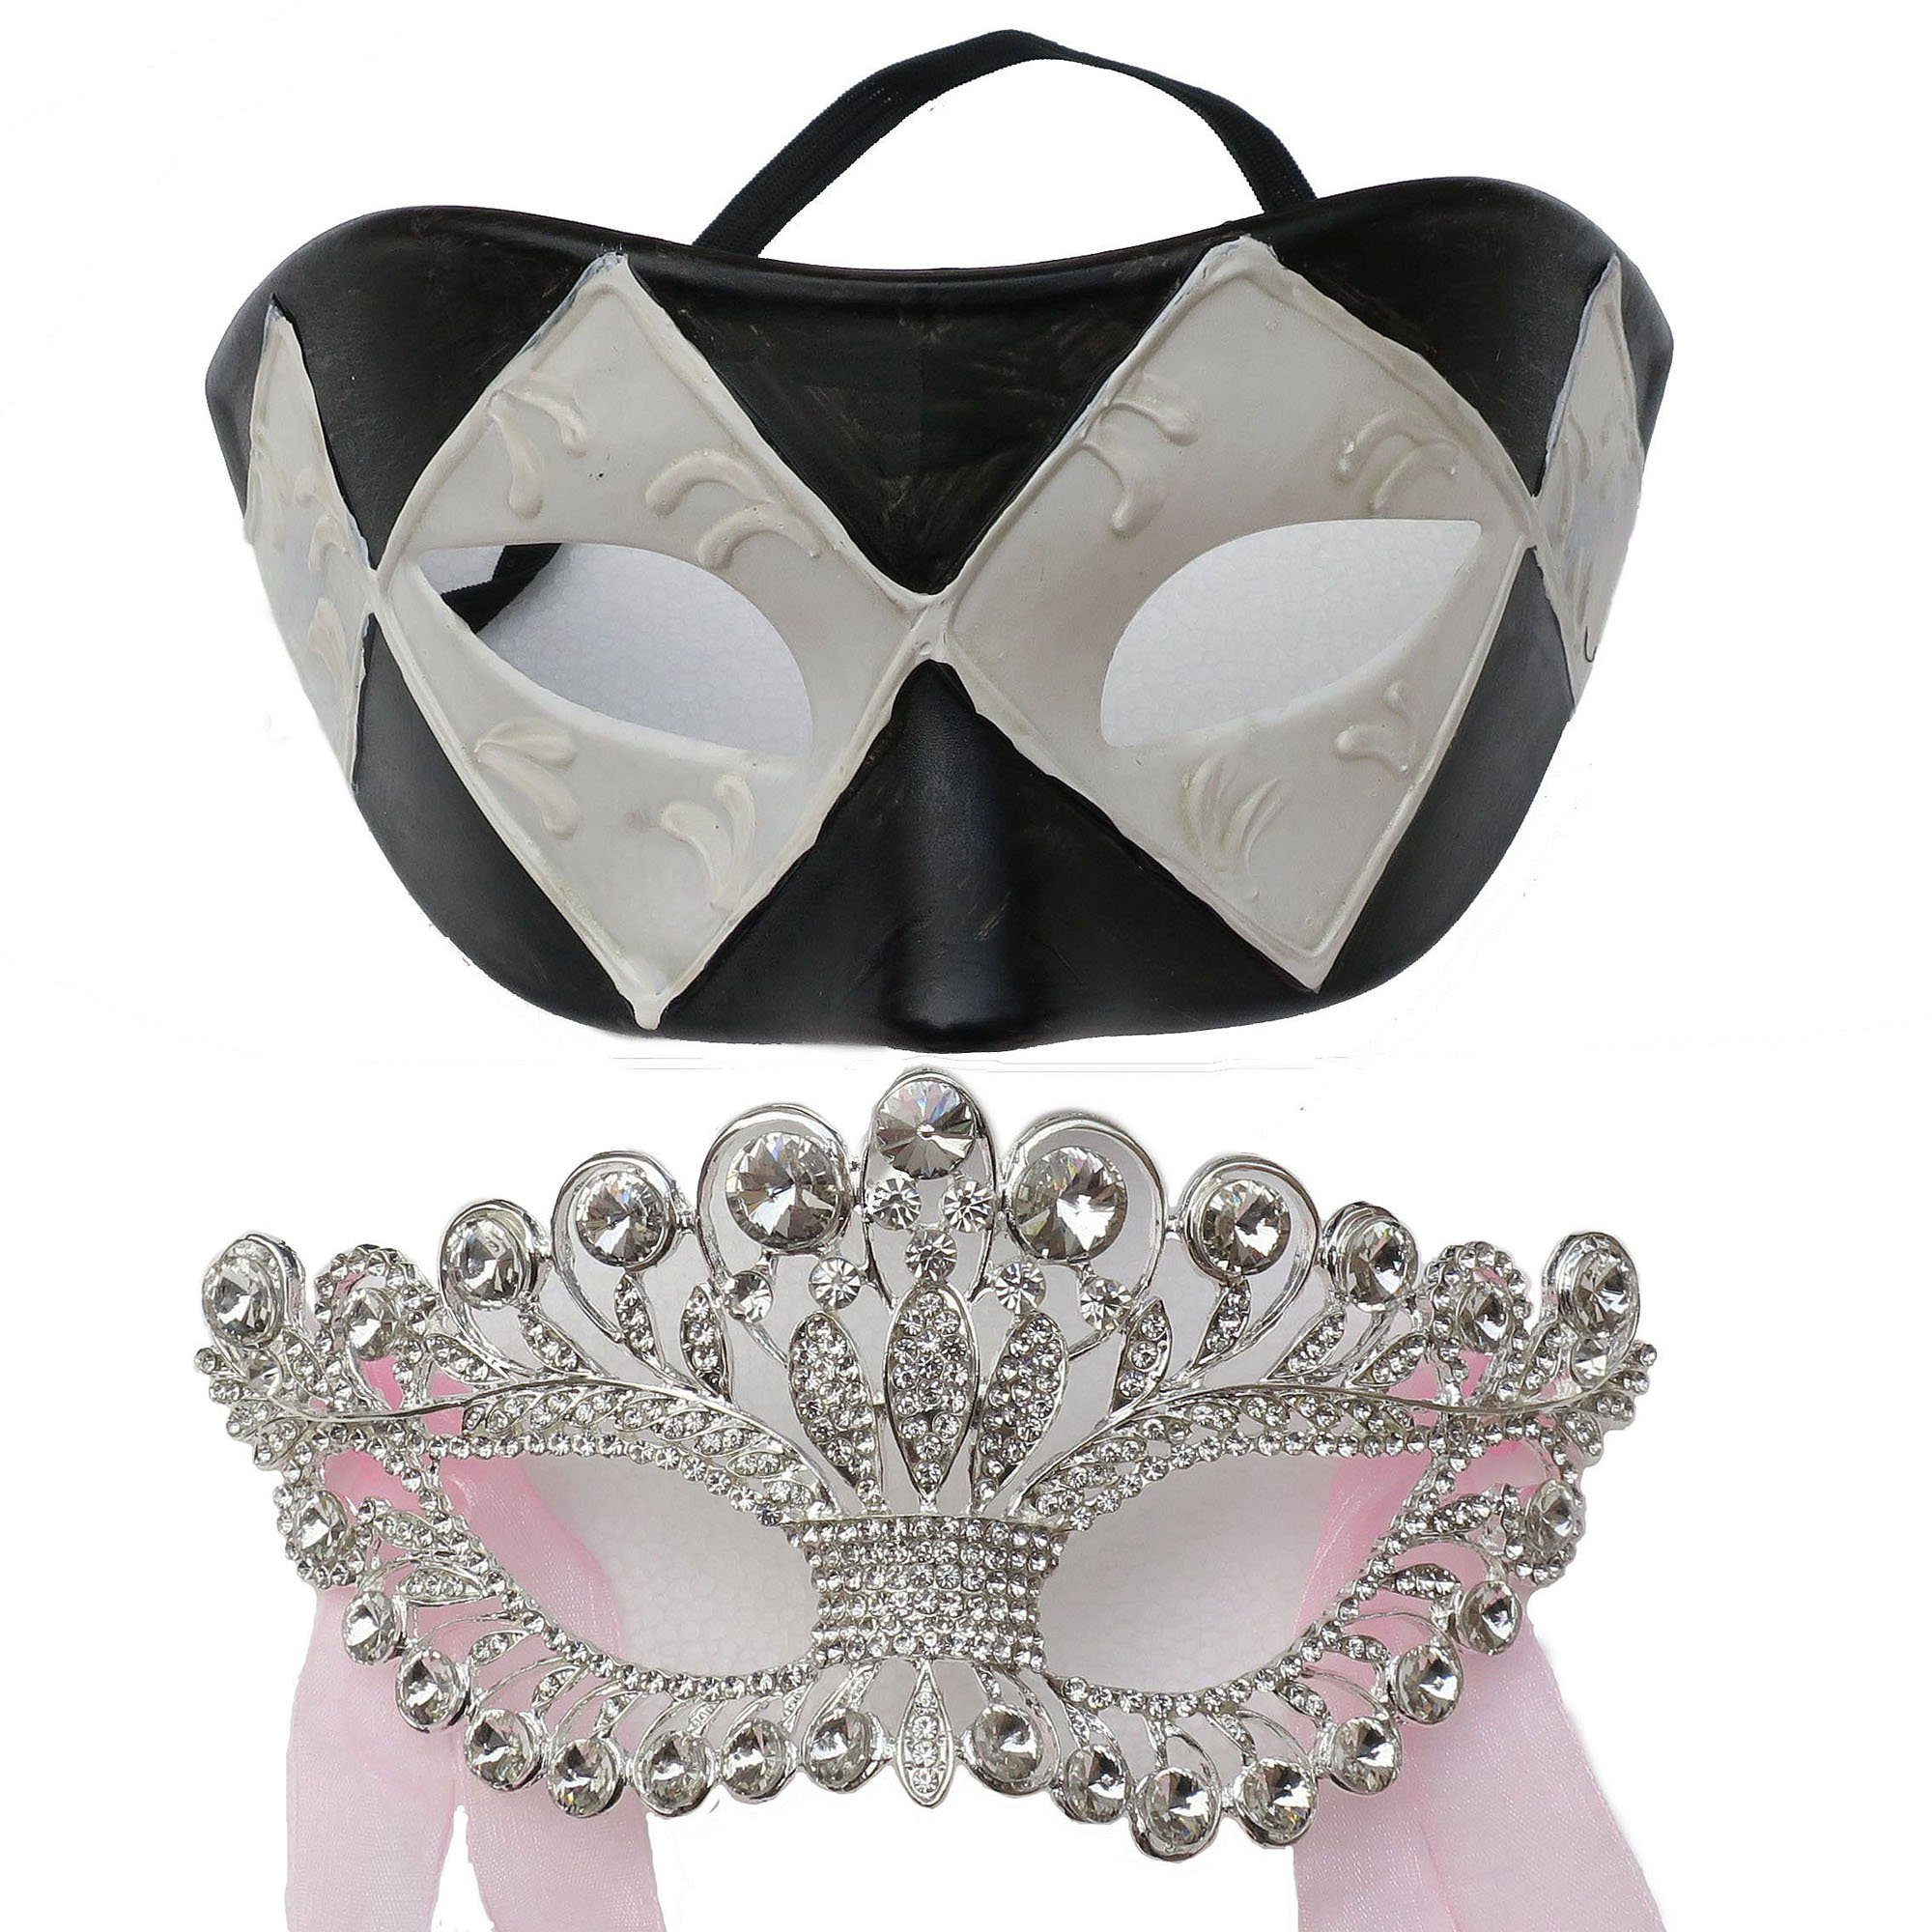 Handicraft Full Rhinestone Venetian Masquerade Ball Women Mask and Black White Grid for Party (Couples Style)